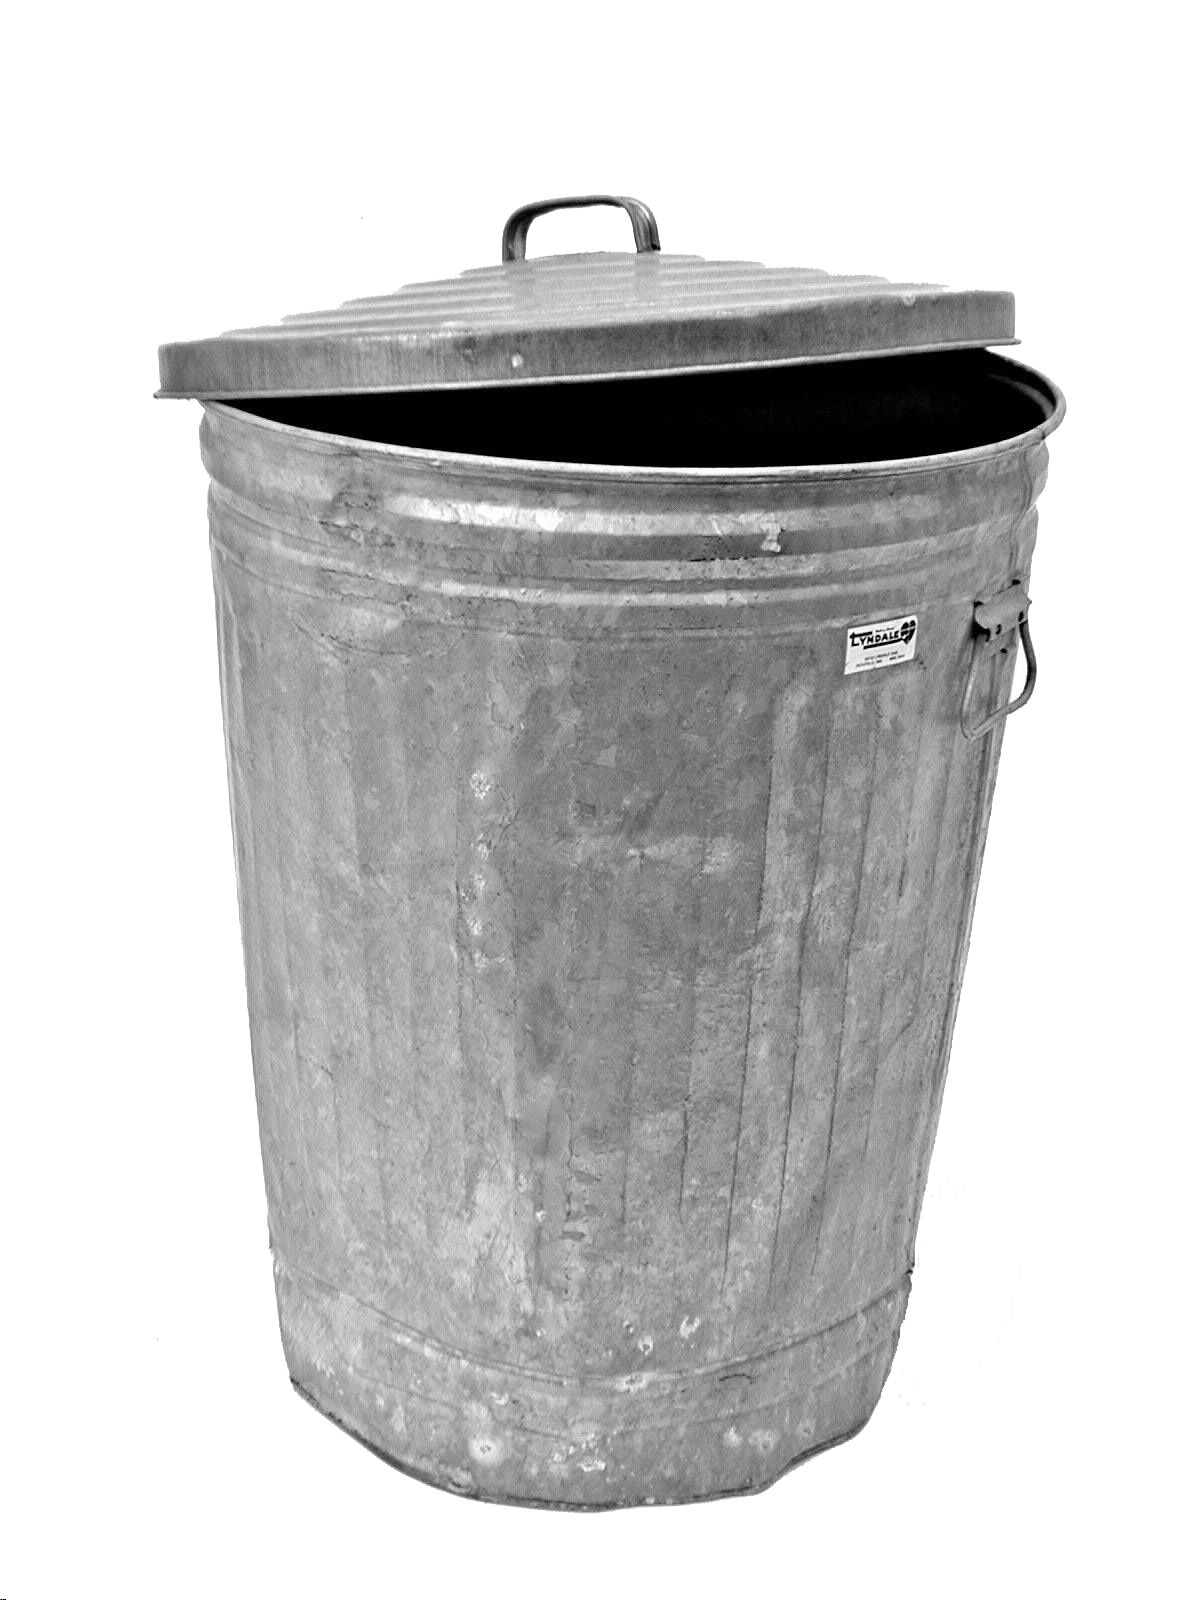 Trash Can PNG Transparent Images.